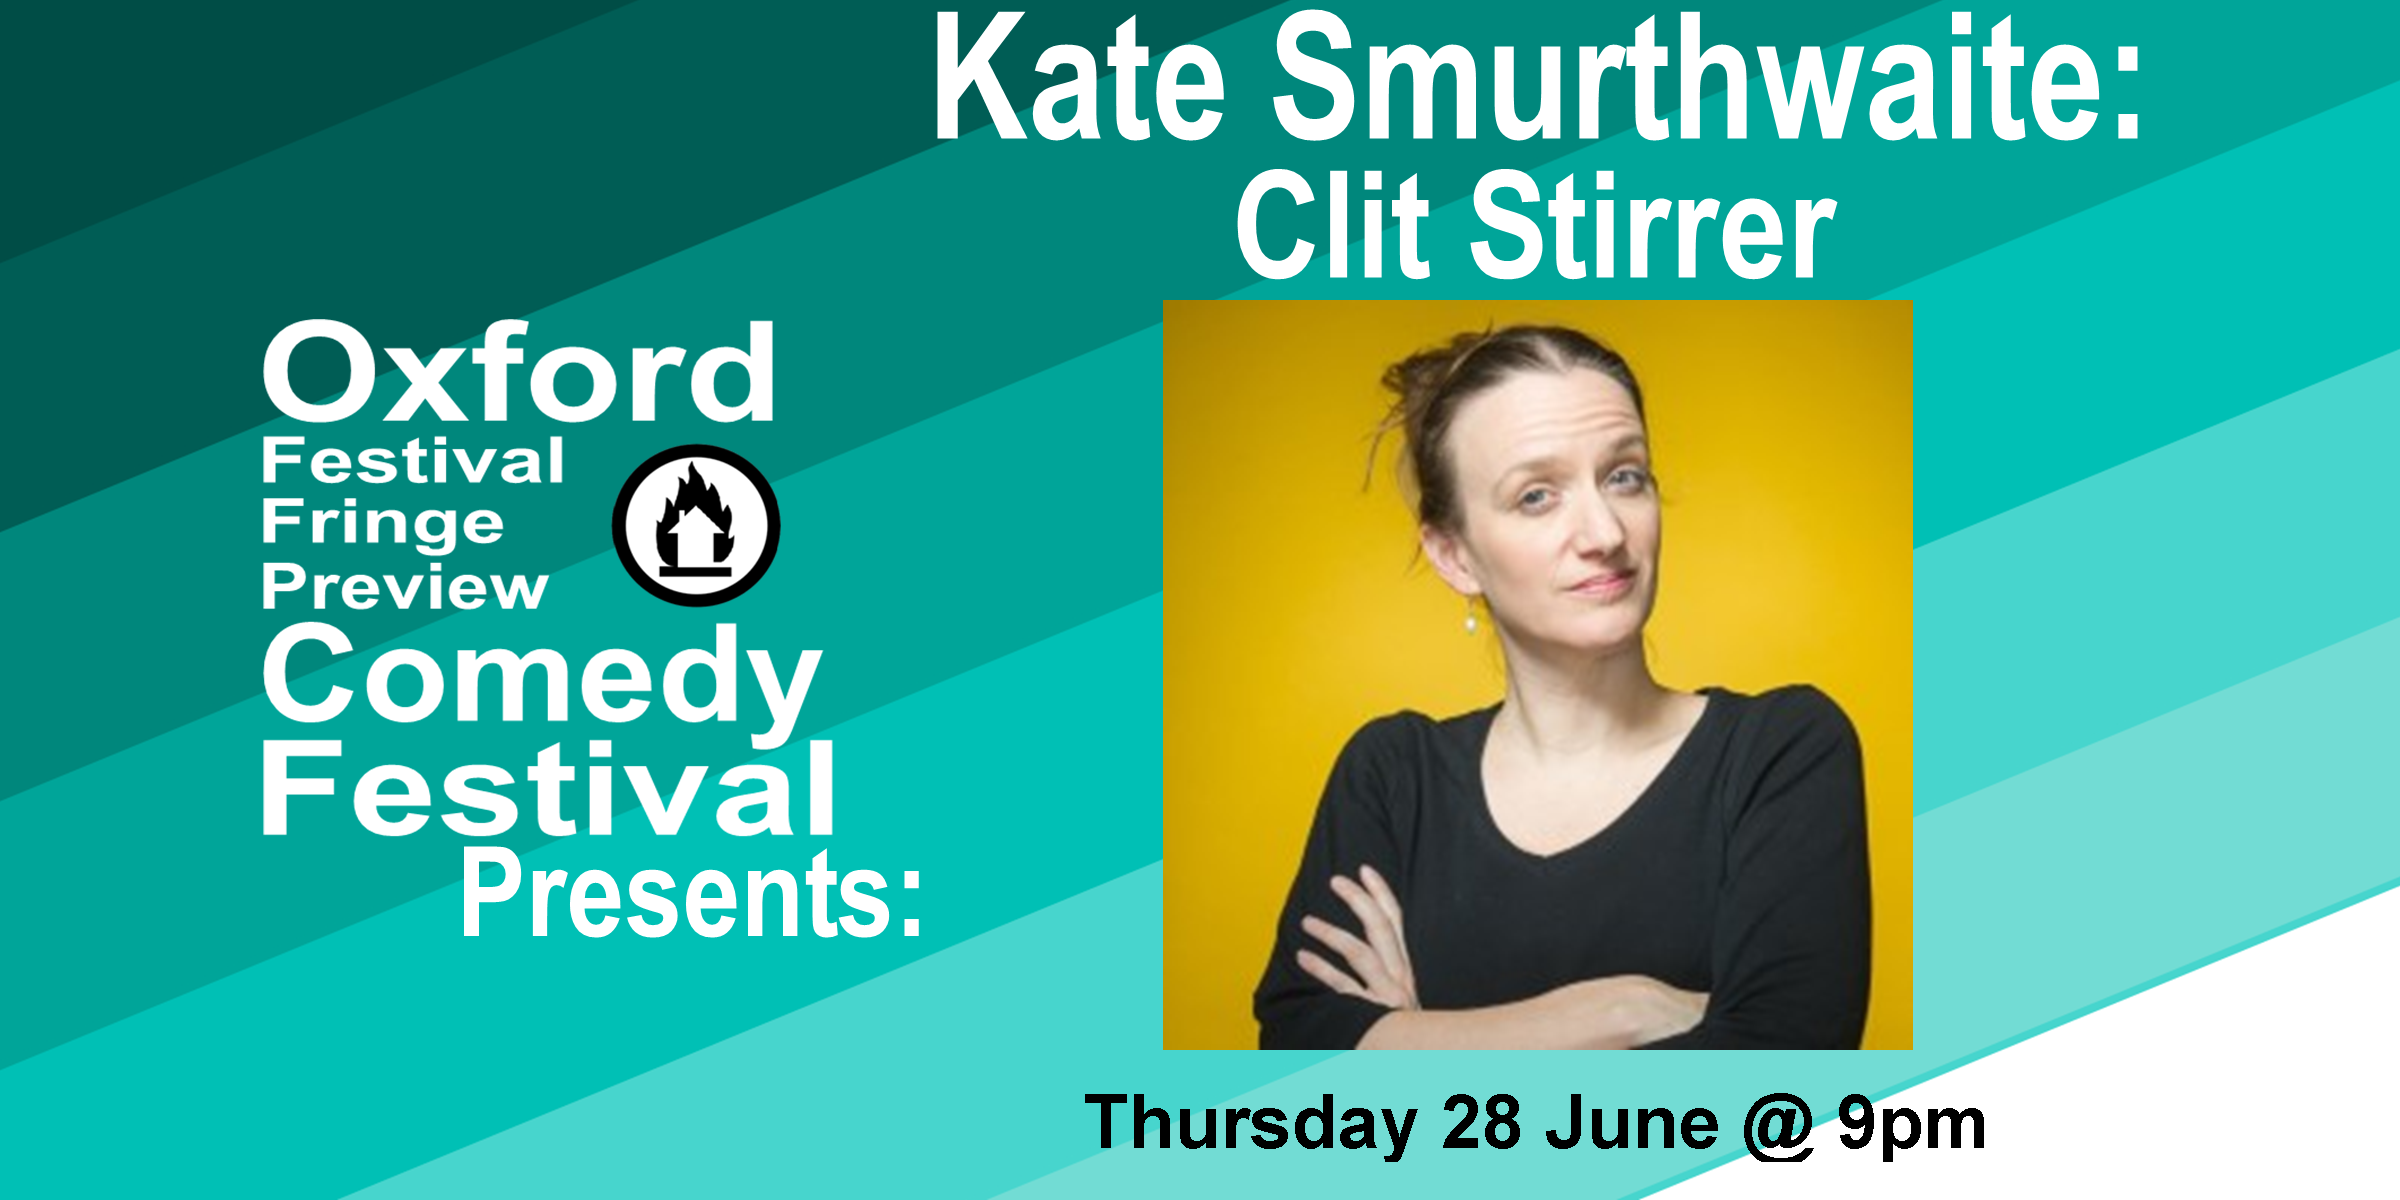 Kate Smurthwaite finally tells us what she really thinks. The award-winning feminist, atheist, polyamorous comedian, writer for Have I Got News For You and former Question Time panellist, puts away all those years of coquettishness and gets off the fence.  Get access to any and all of the 26 shows of the Oxford Festival Fringe Preview Comedy Festival for one low price. For only £30 you can see as many of the amazing acts as you want.  60 Minute  Doors at 8:50/Show at 9pm    Get Your Tickets Here!